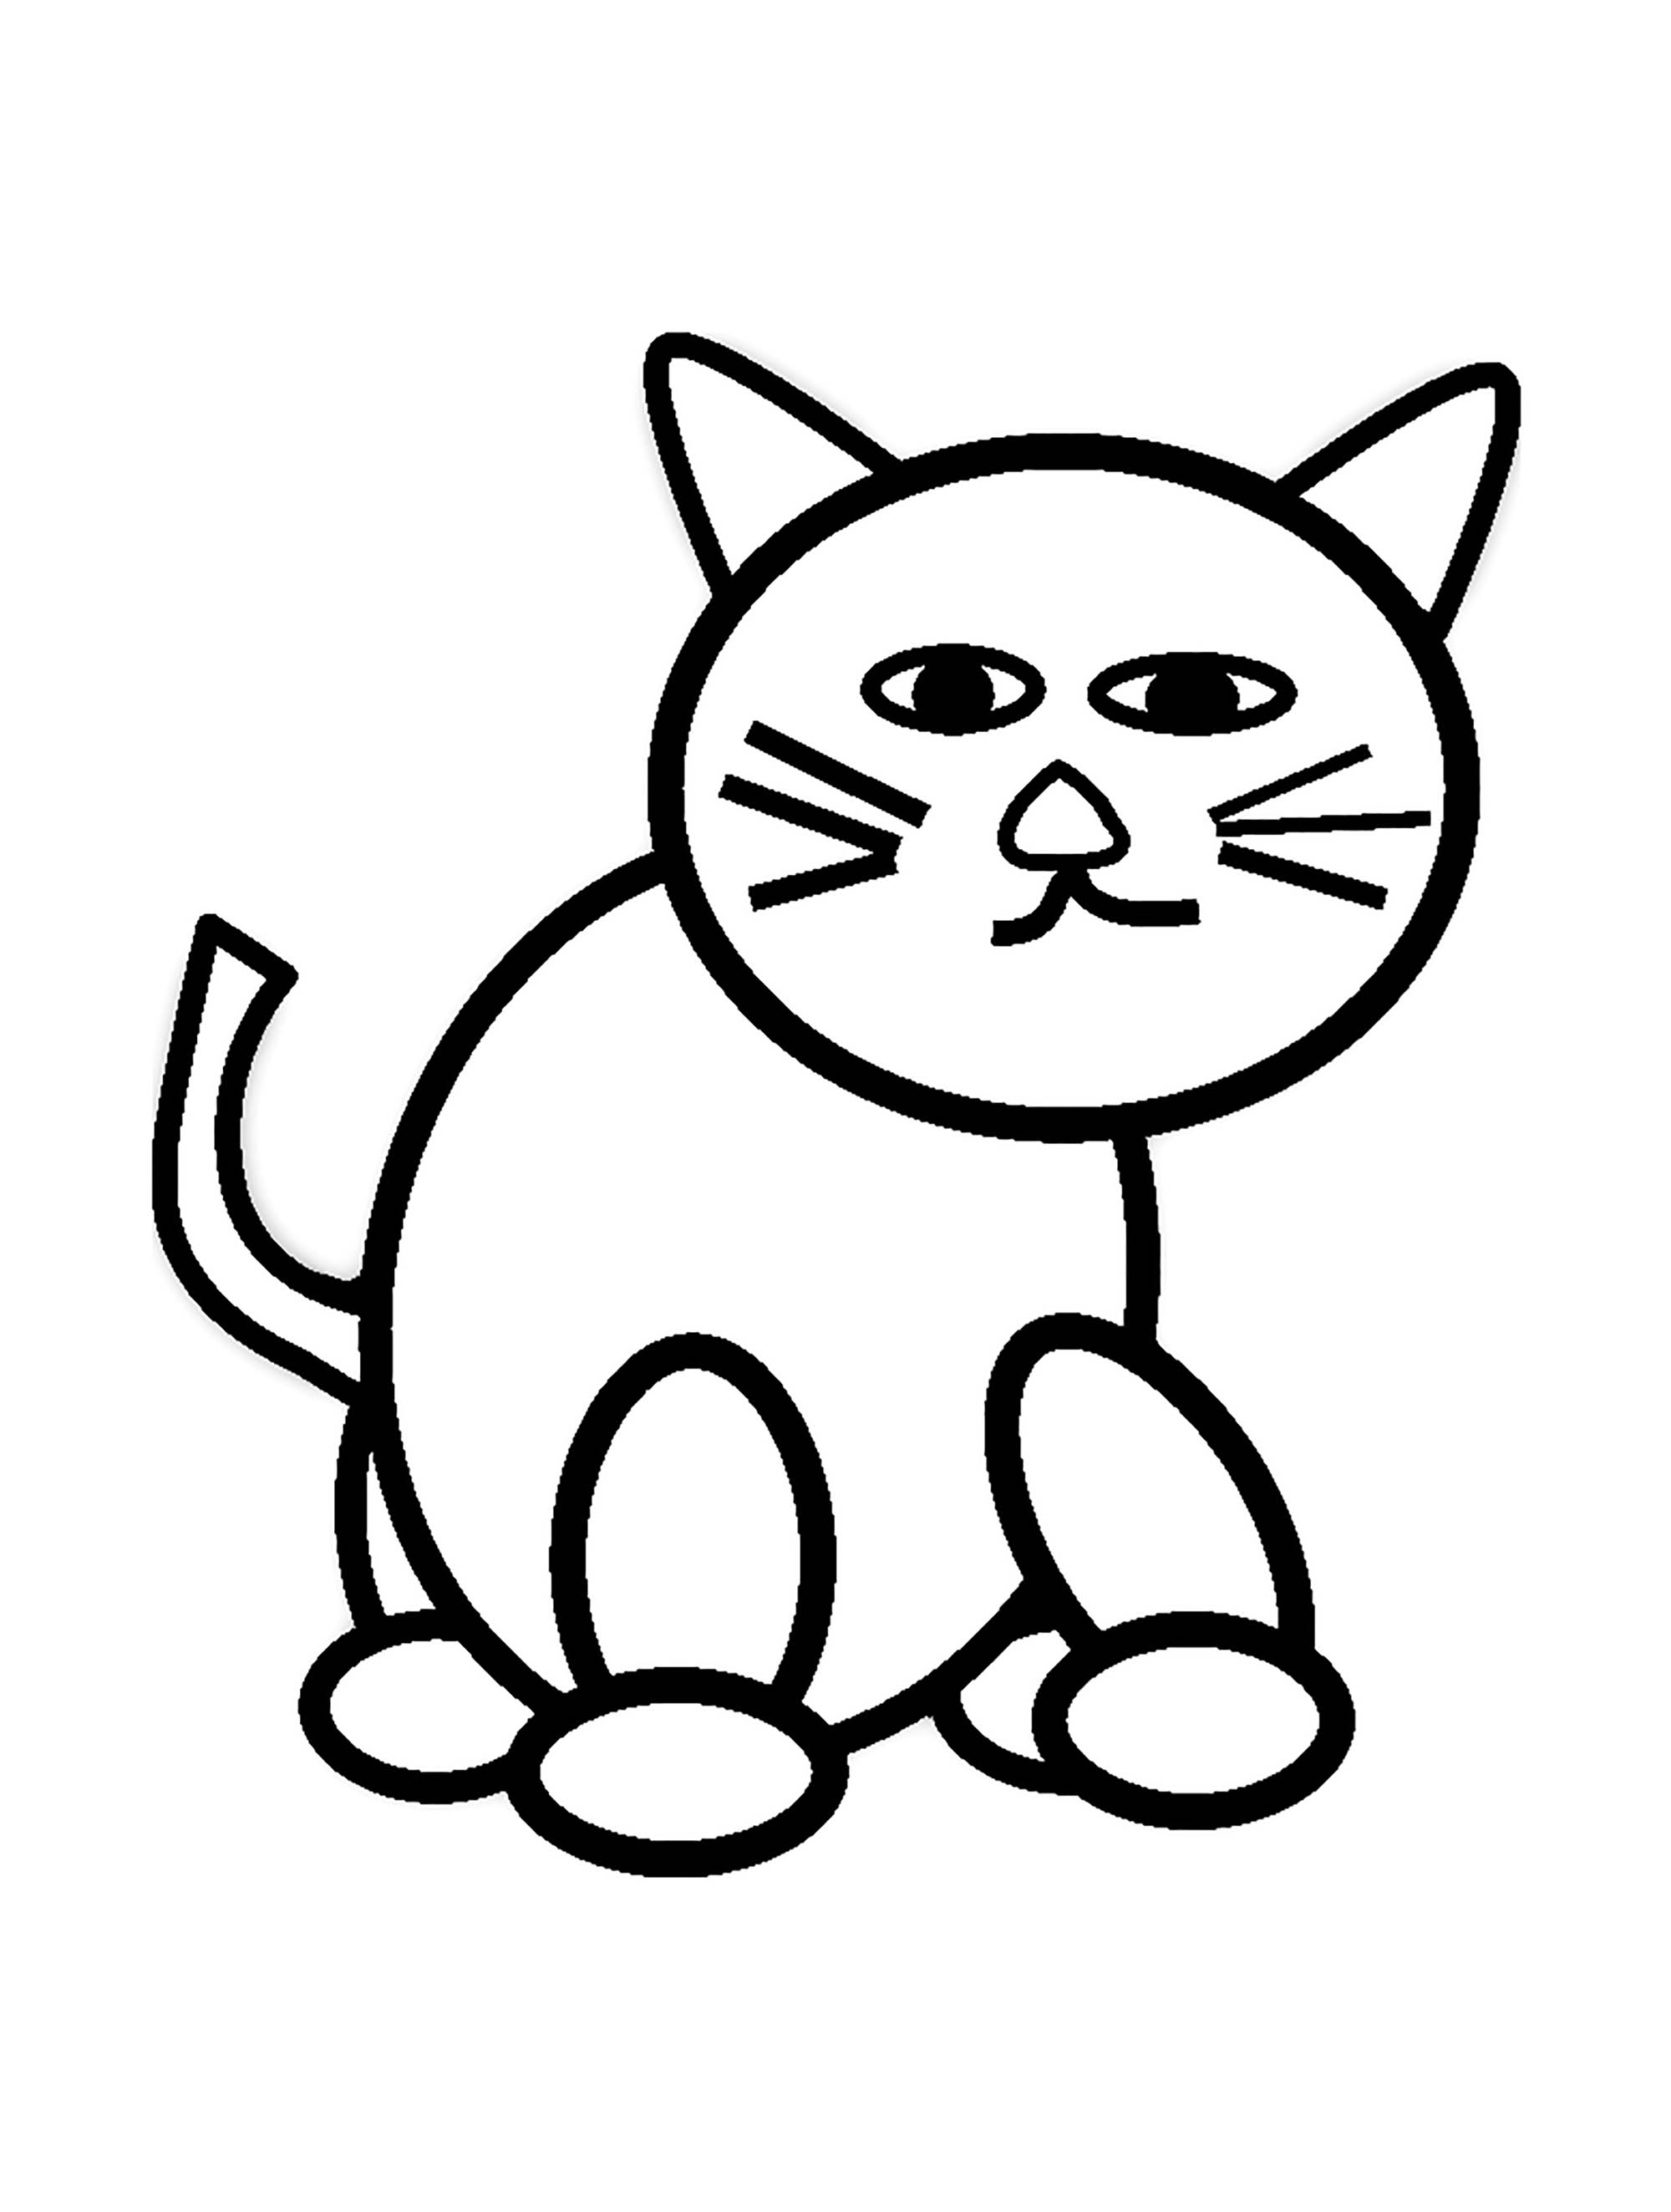 cat pictures to print cat coloring pages coloringrocks print to cat pictures